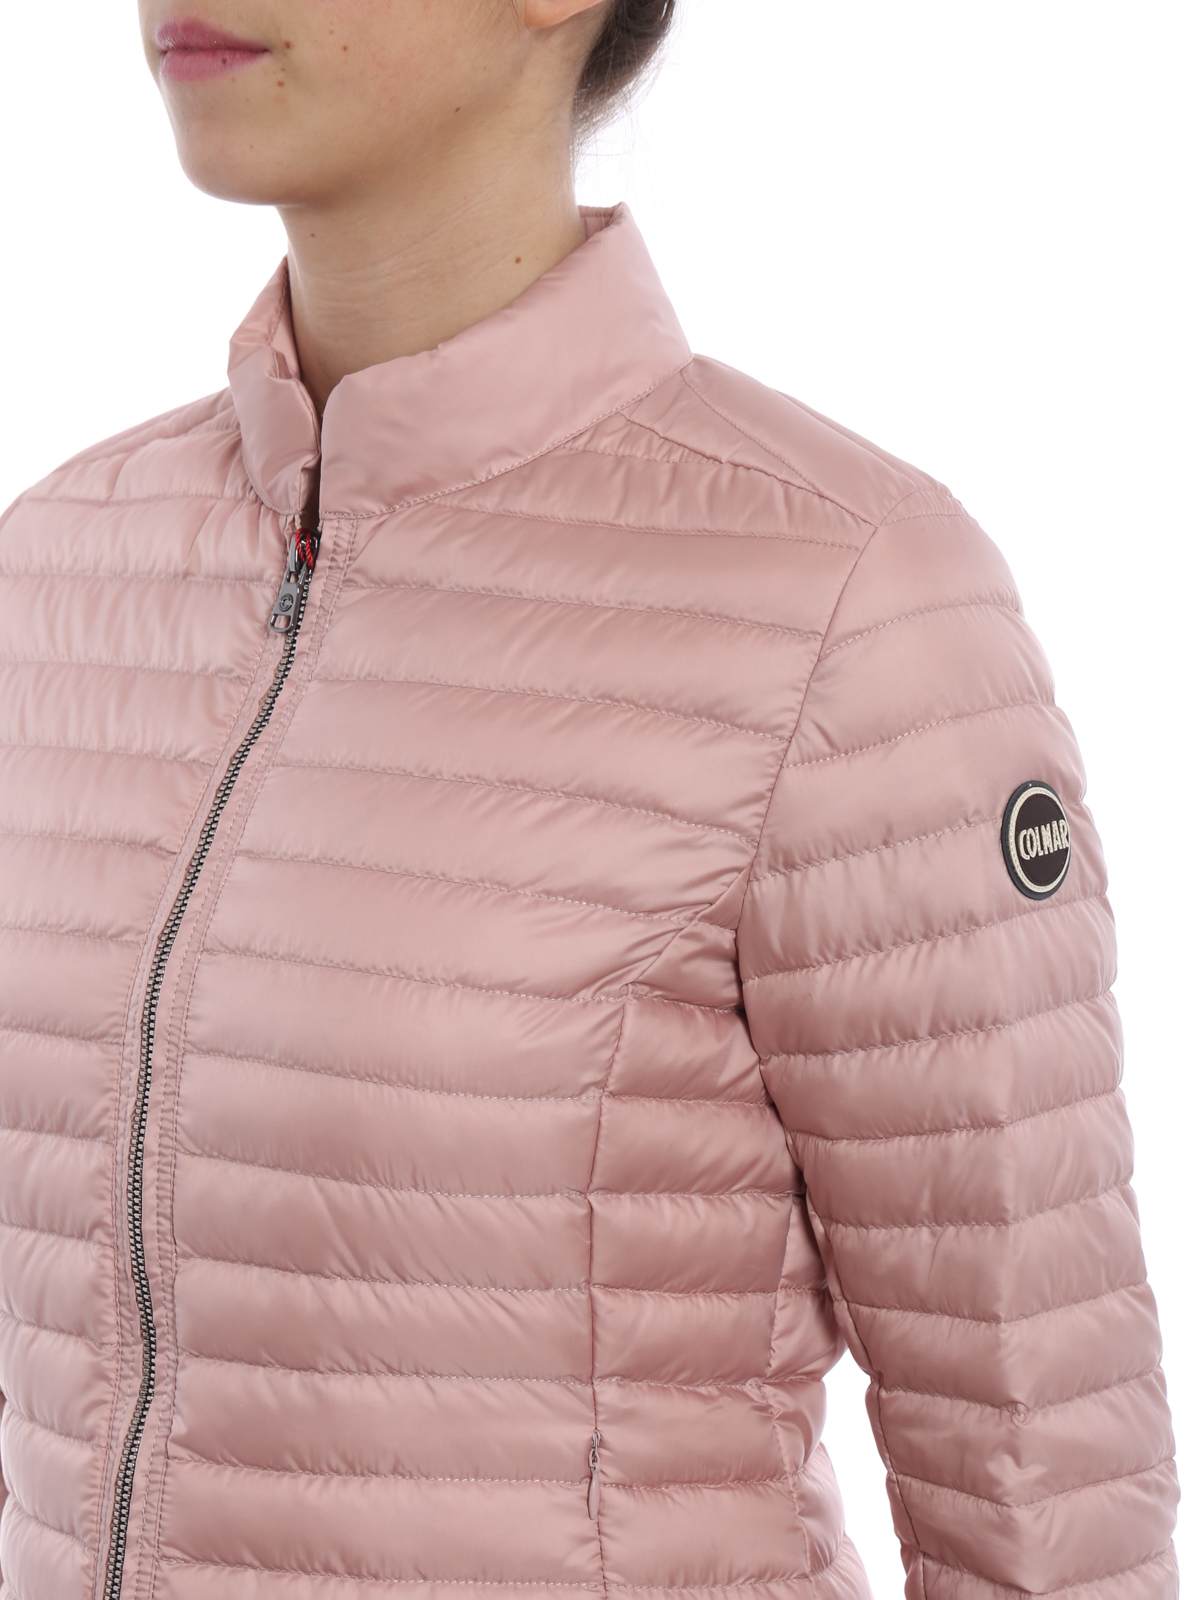 competitive price 7a78f b29fc Colmar Originals - Punk light down padded pink jacket ...